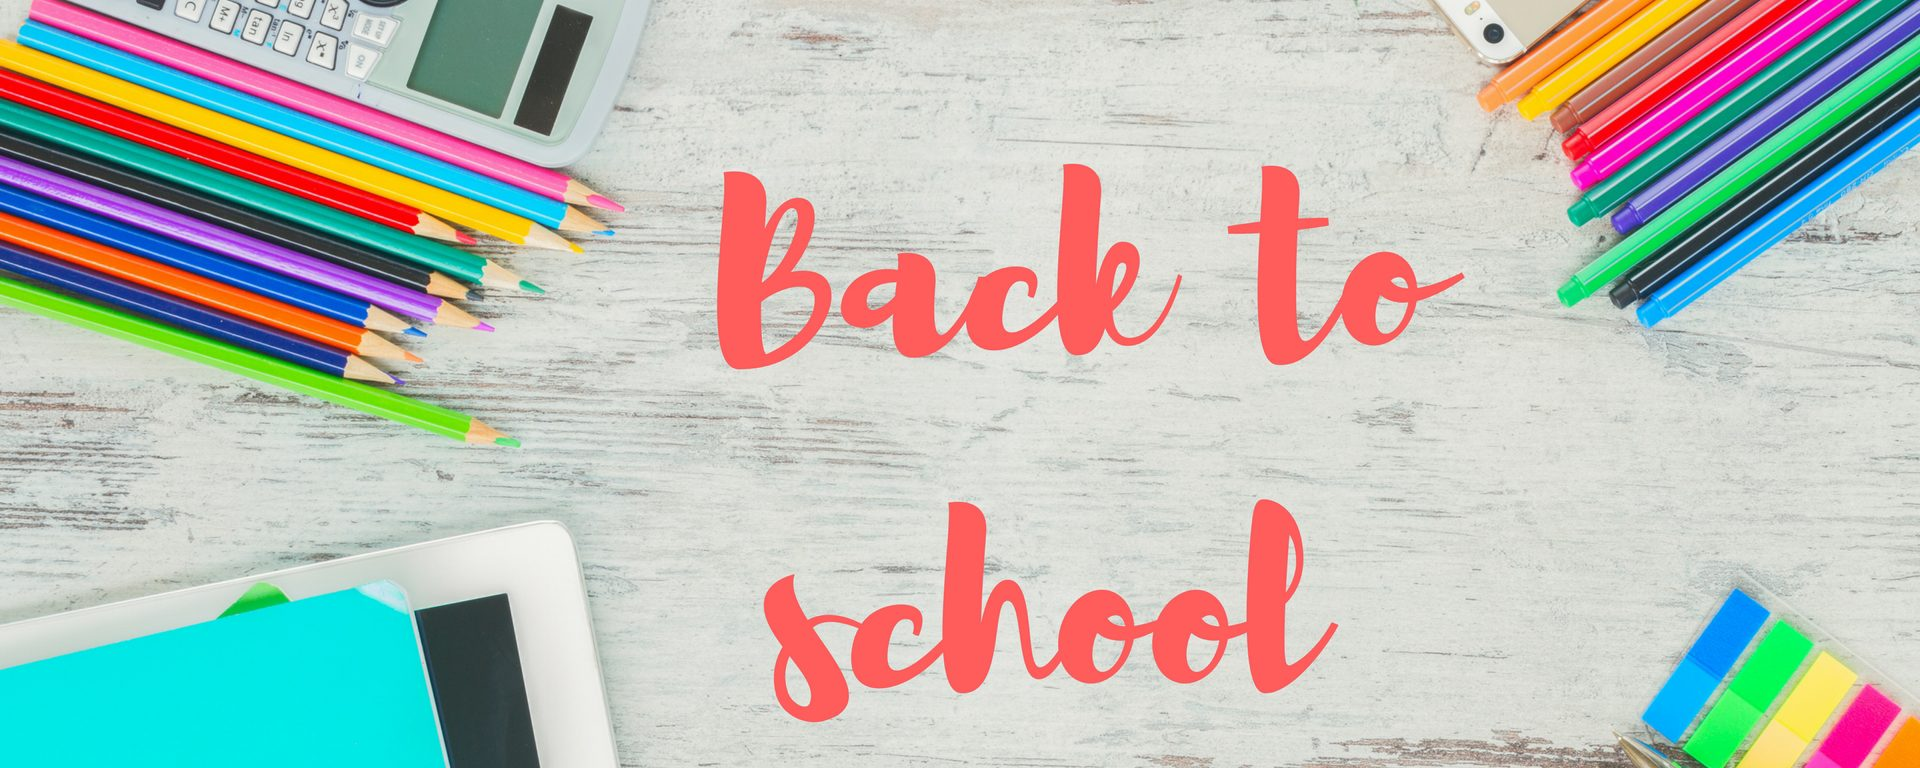 Back to school made easy with online shopping: it's about time for you to start planning for the upcoming school year with everything that your kids might need. With this, I have put together a list of shops that you can check out, and which can help you save time from driving to the stores